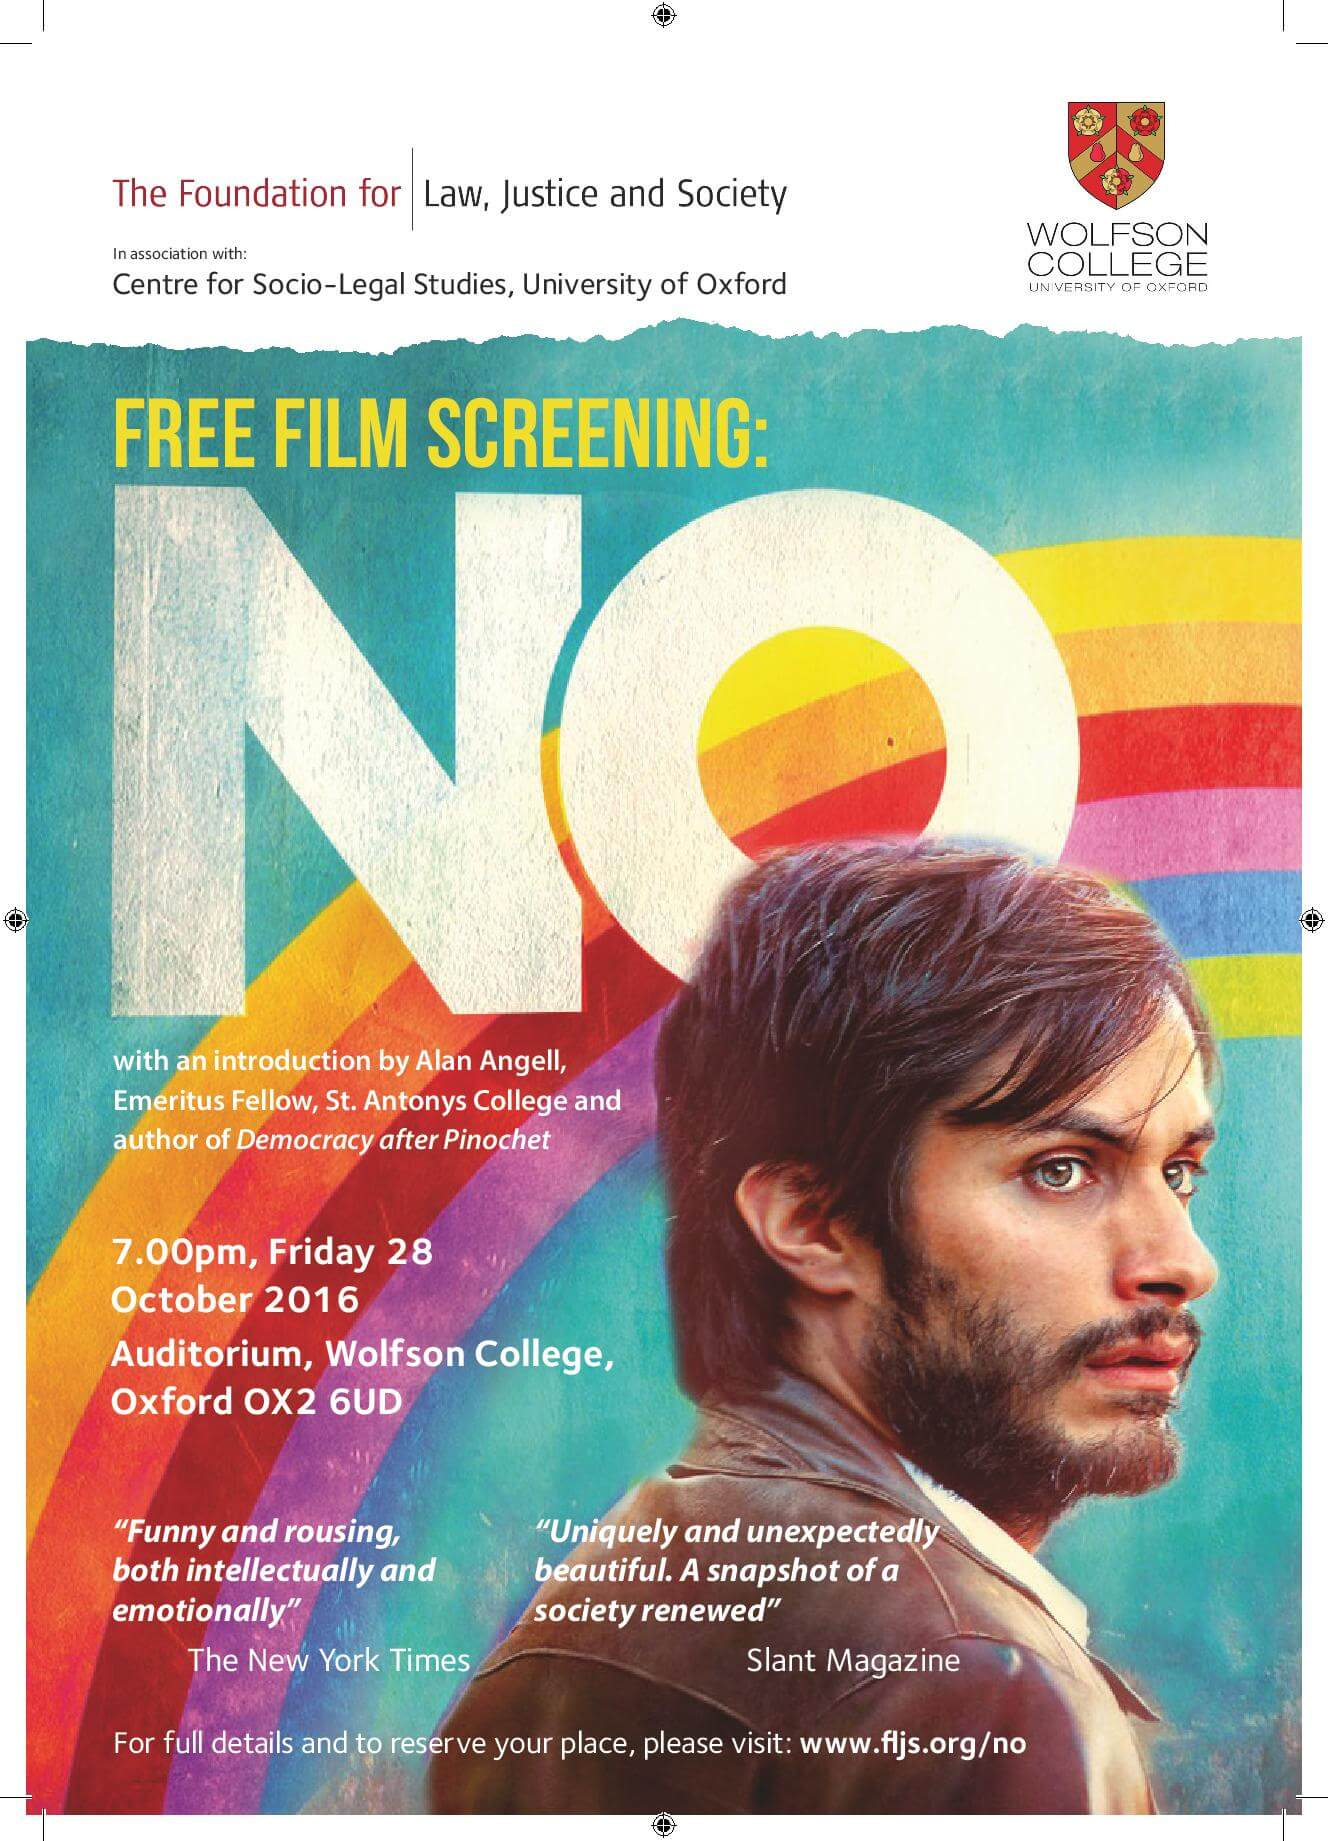 The Foundation for Law, Justice and Society Free Film Screening of No